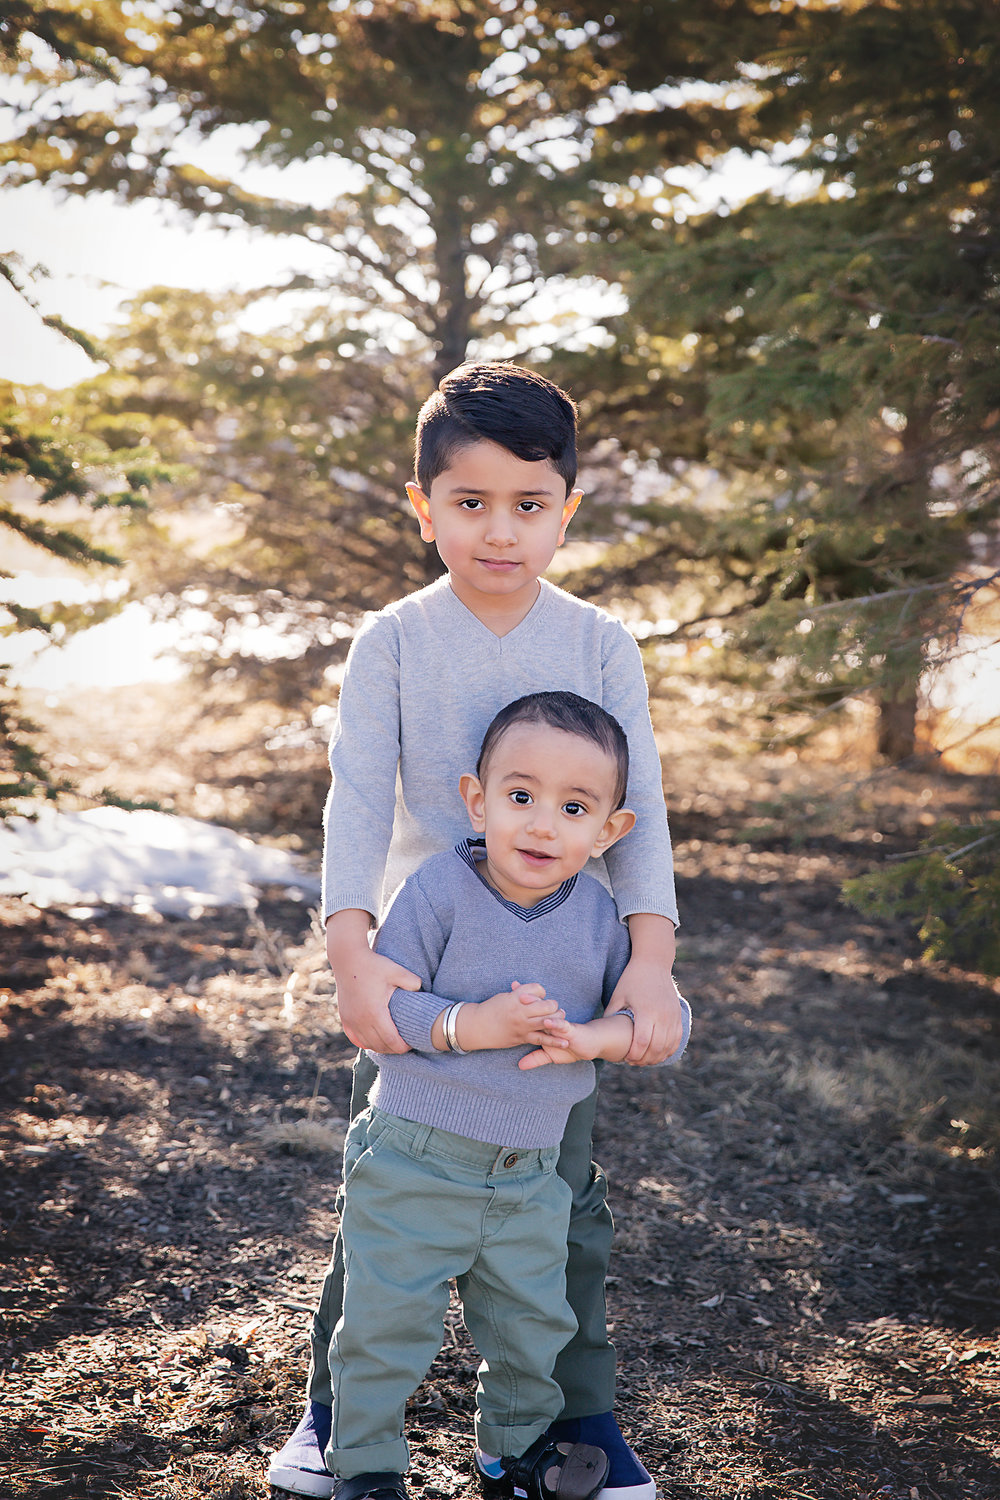 Portraits of 2 young boys. Brothers. Family photographer in Calgary, Alberta